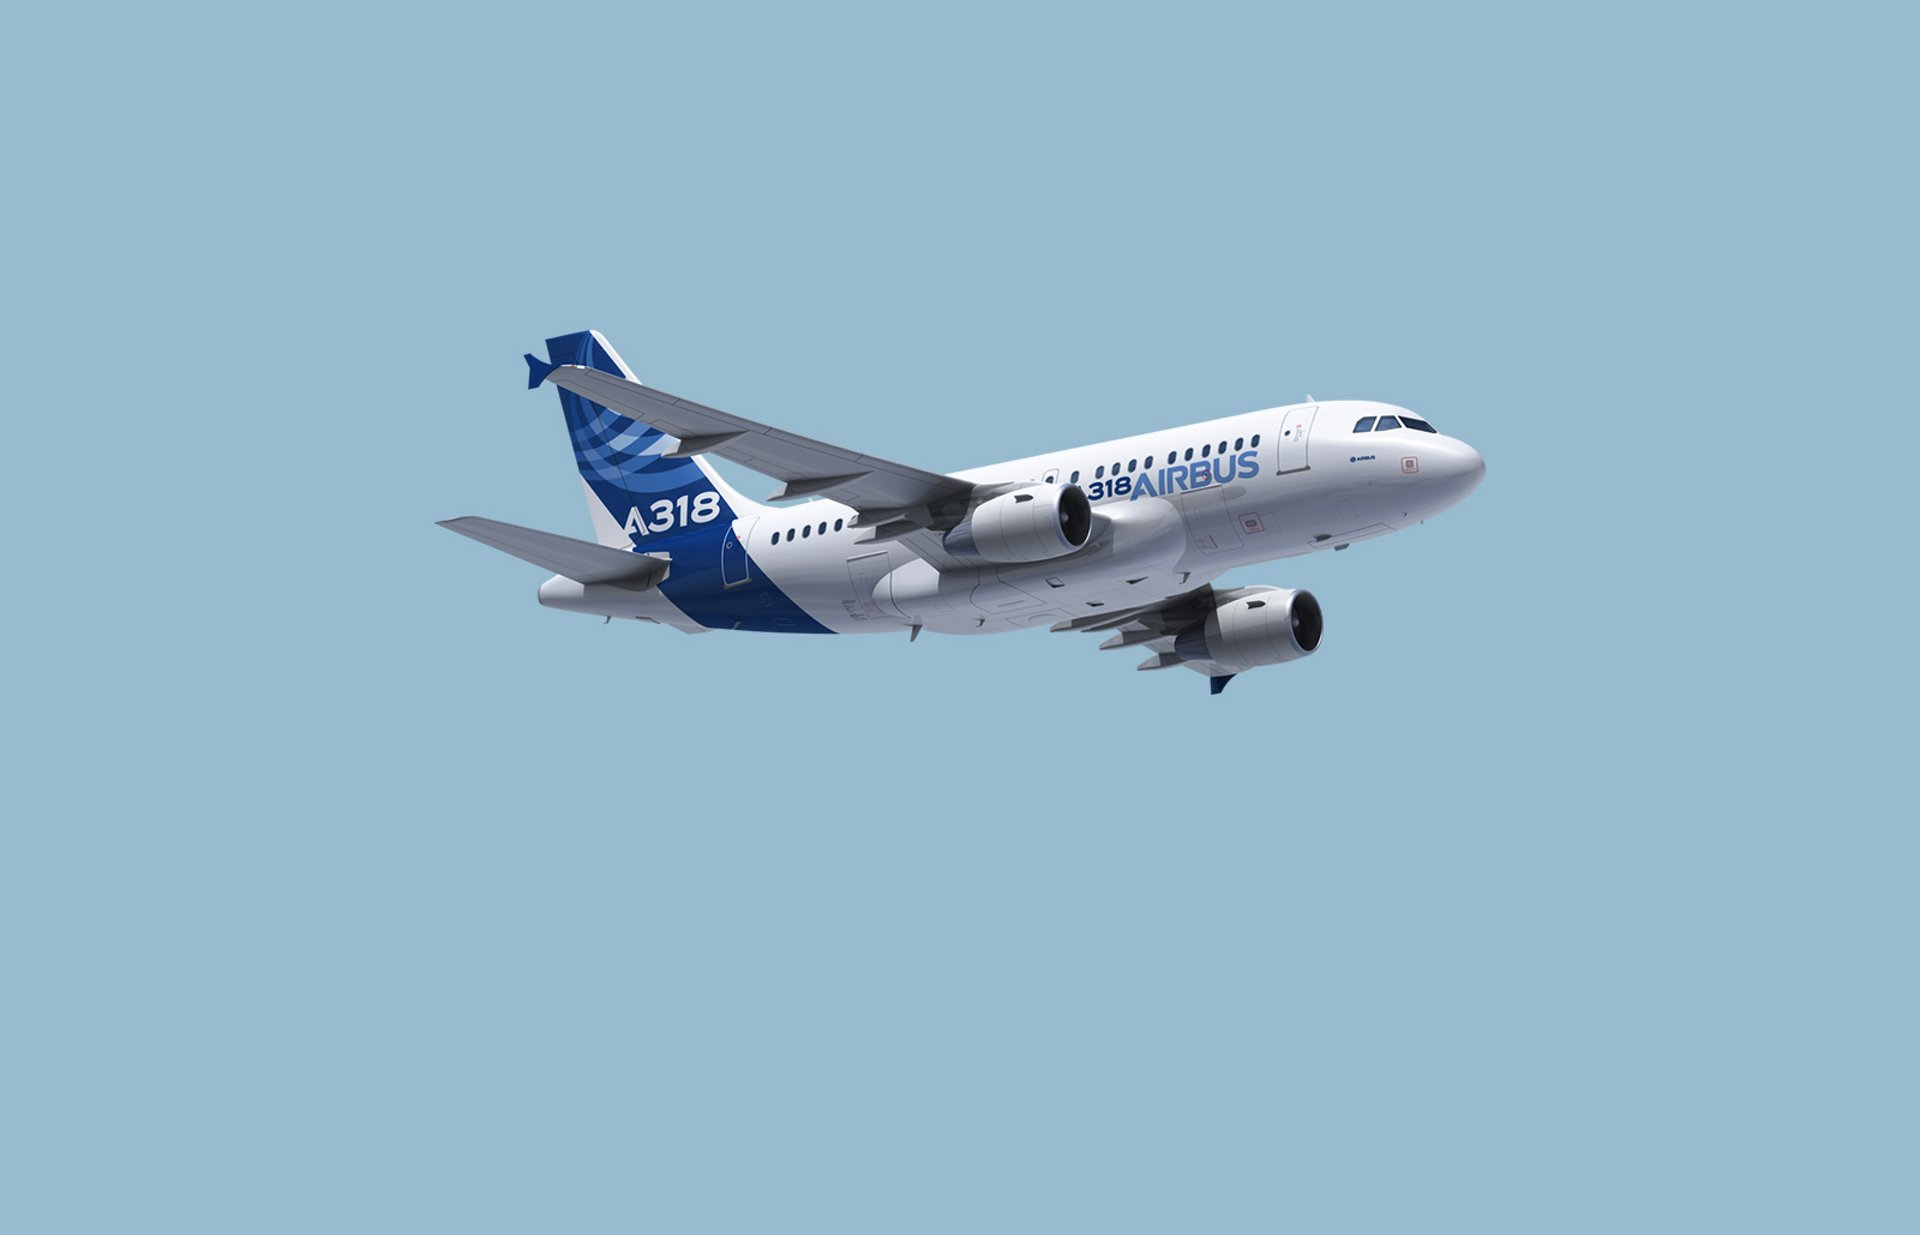 A318 in flight